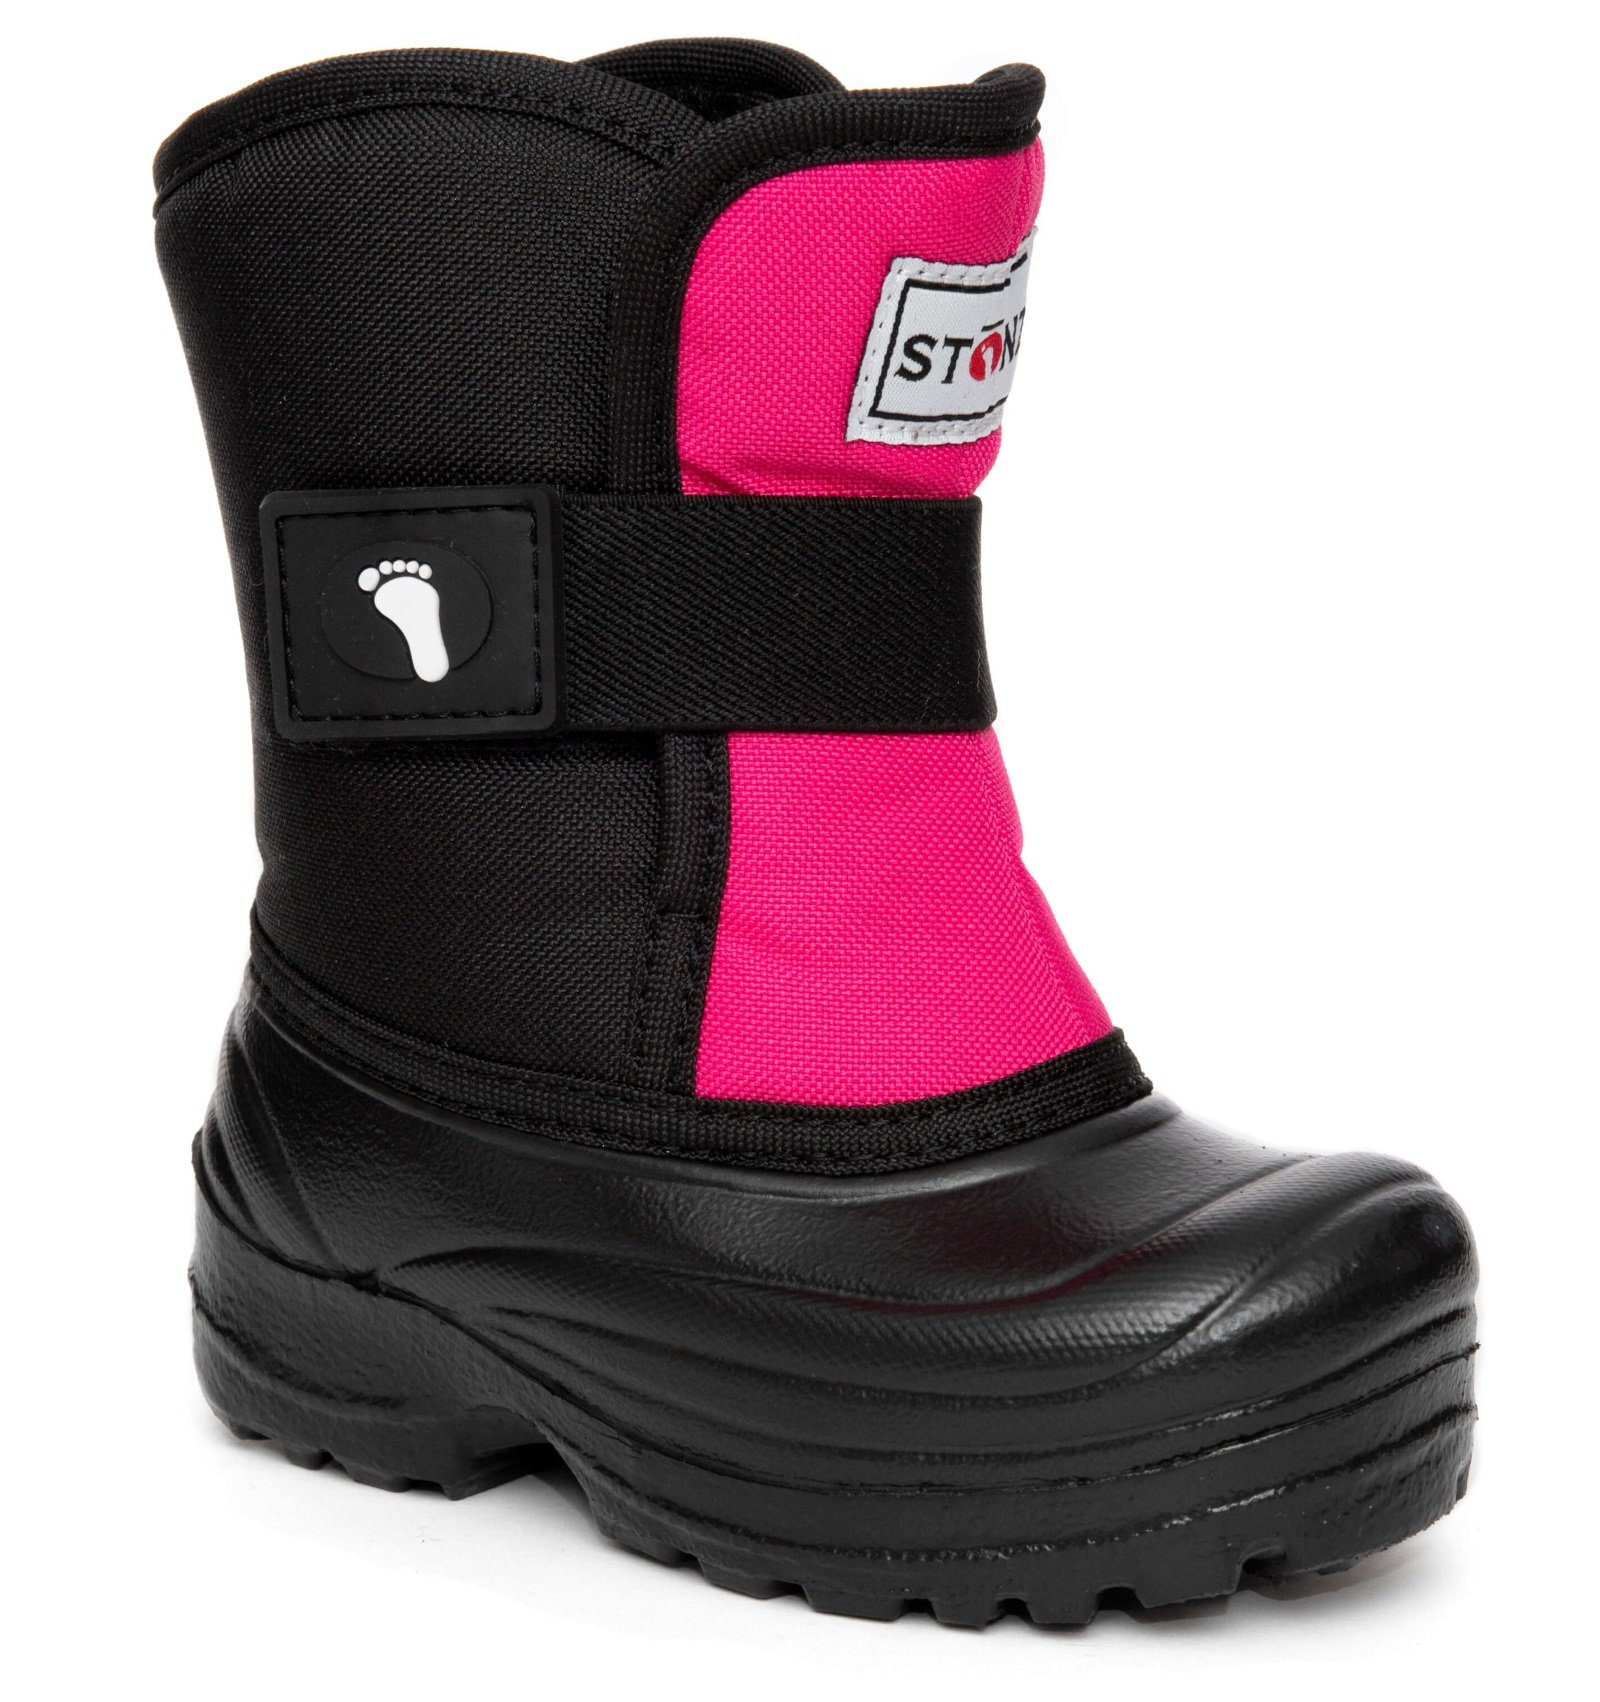 Stonz Scout Winter Boots for Cold Weather, Snow, Ice and Winter Sports - Insulated, Super Light & Warm - Pink/Black, 7T